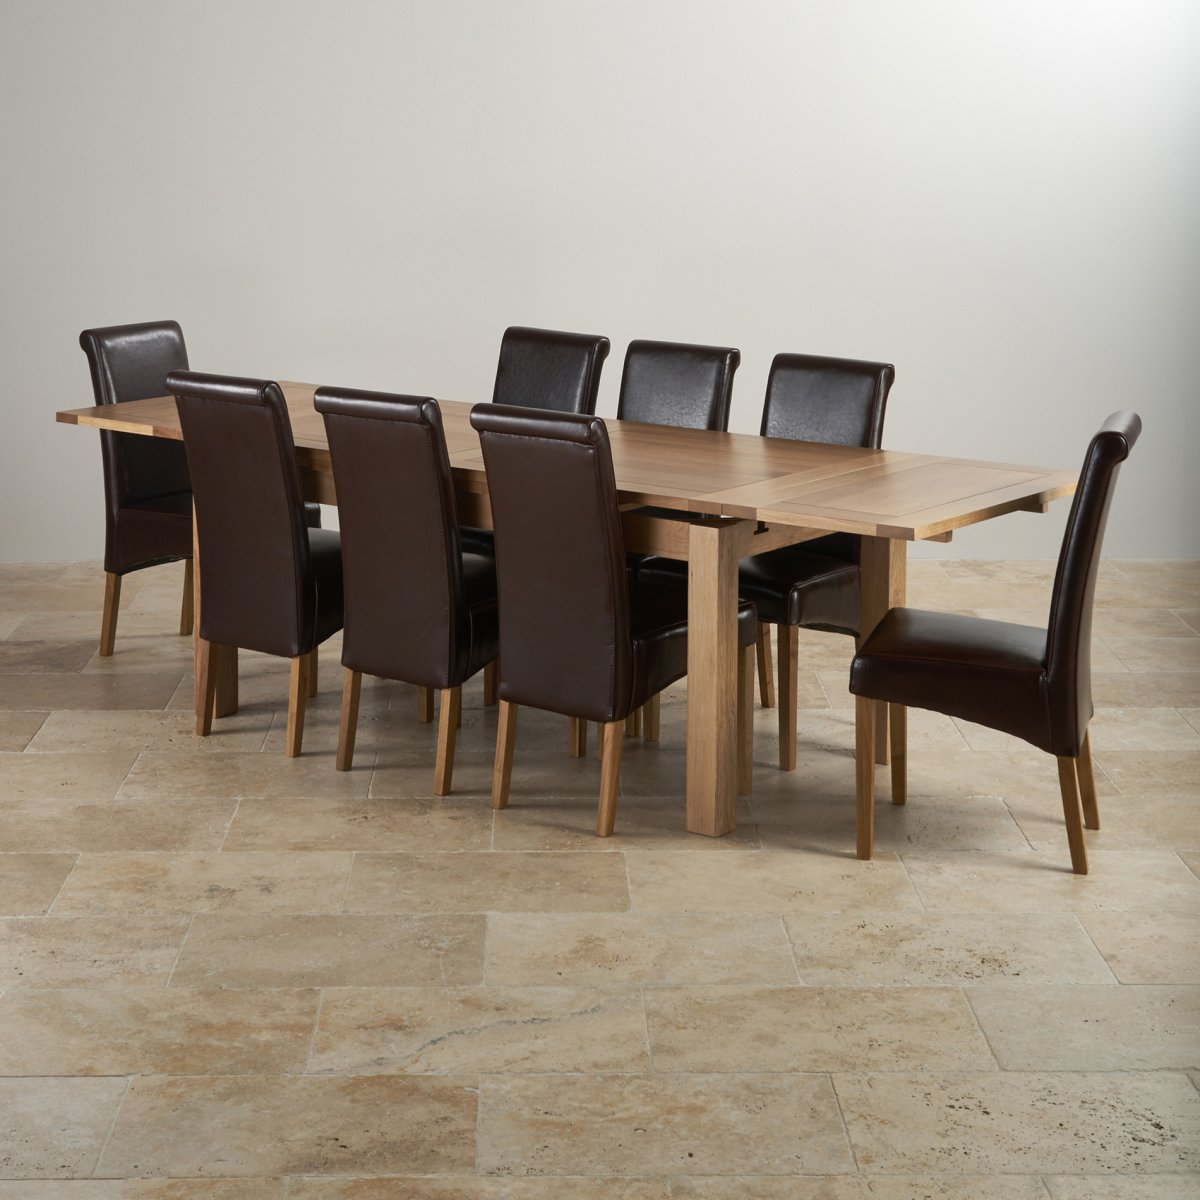 Dorset oak dining set 6ft table with 8 chairs for 8 chair dining room table